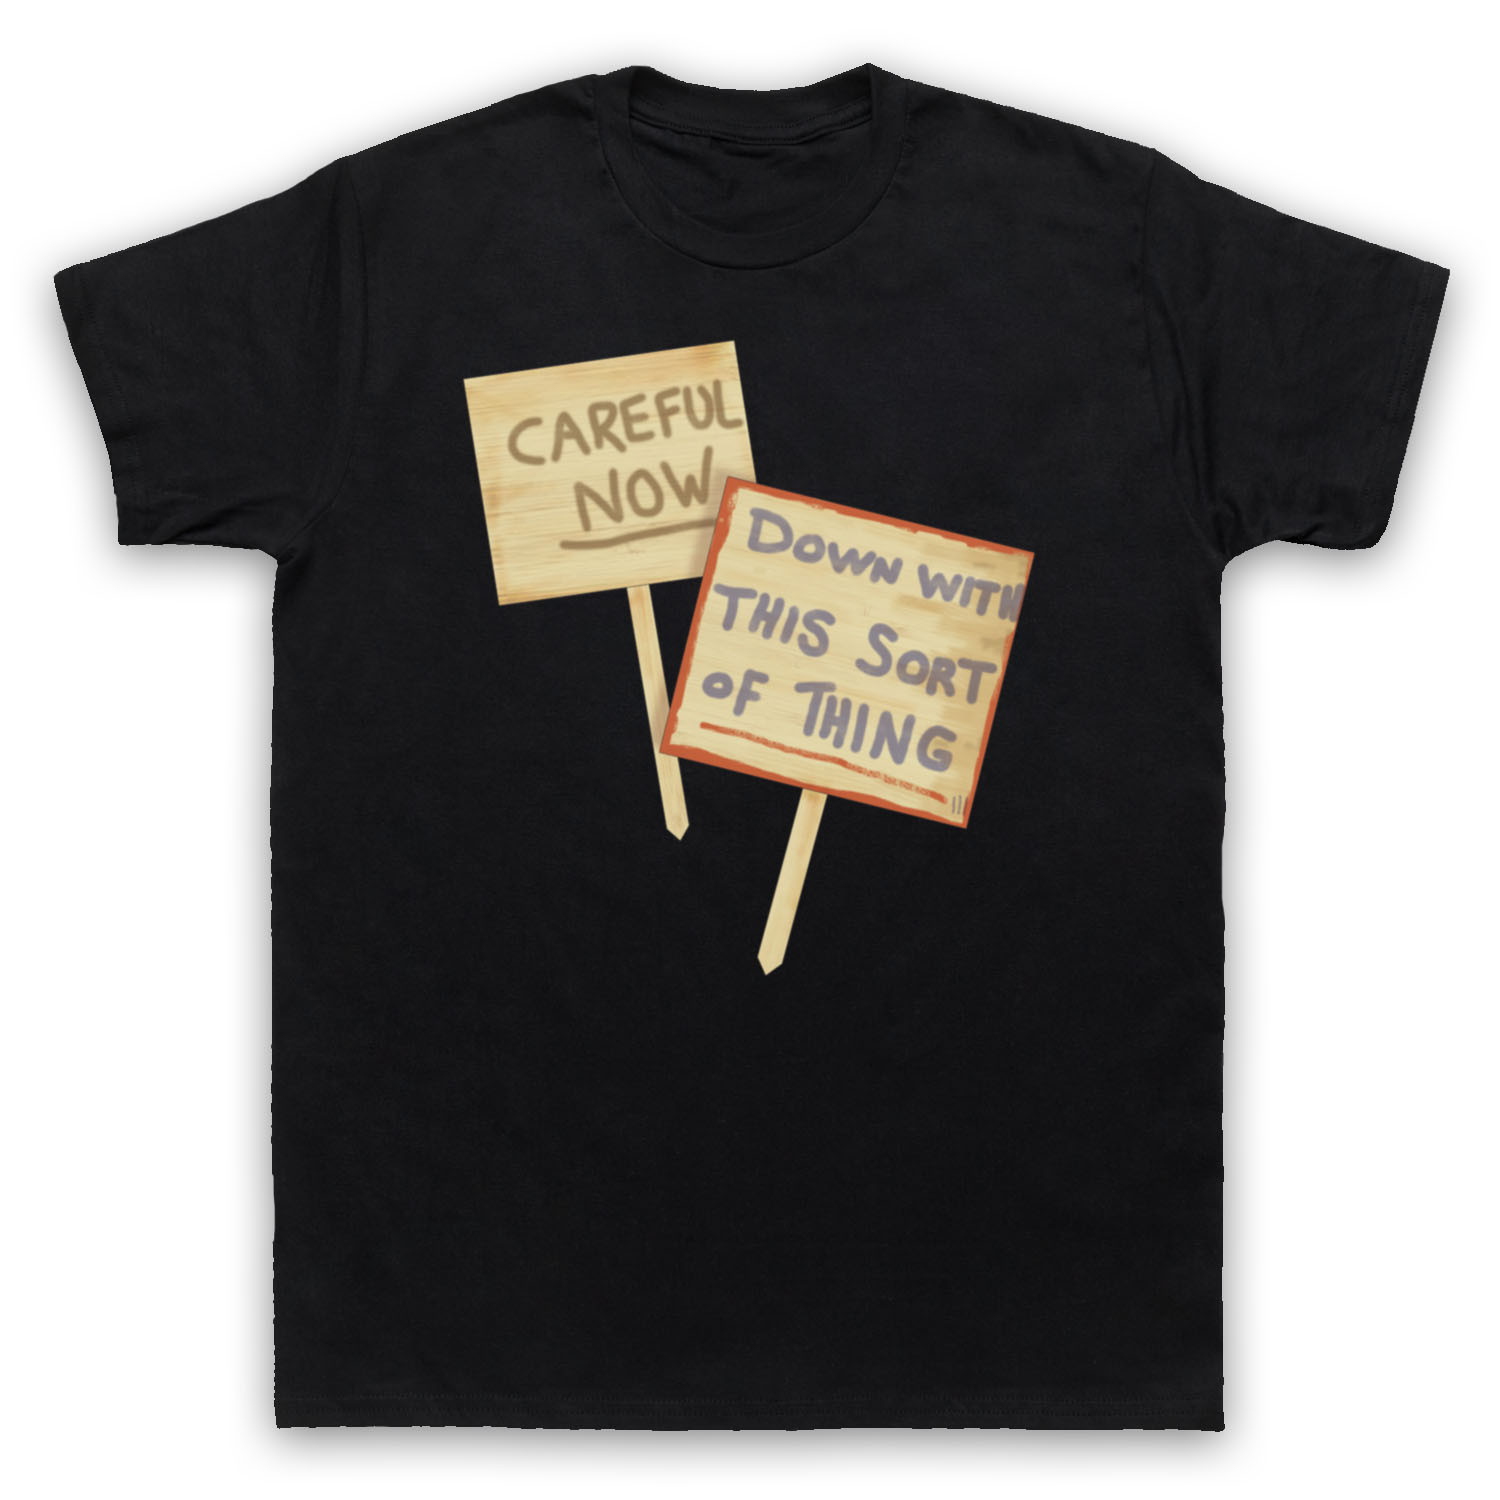 Mens T Shirt Father Ted Down With This Sort Of Thing Careful Now T Shirt